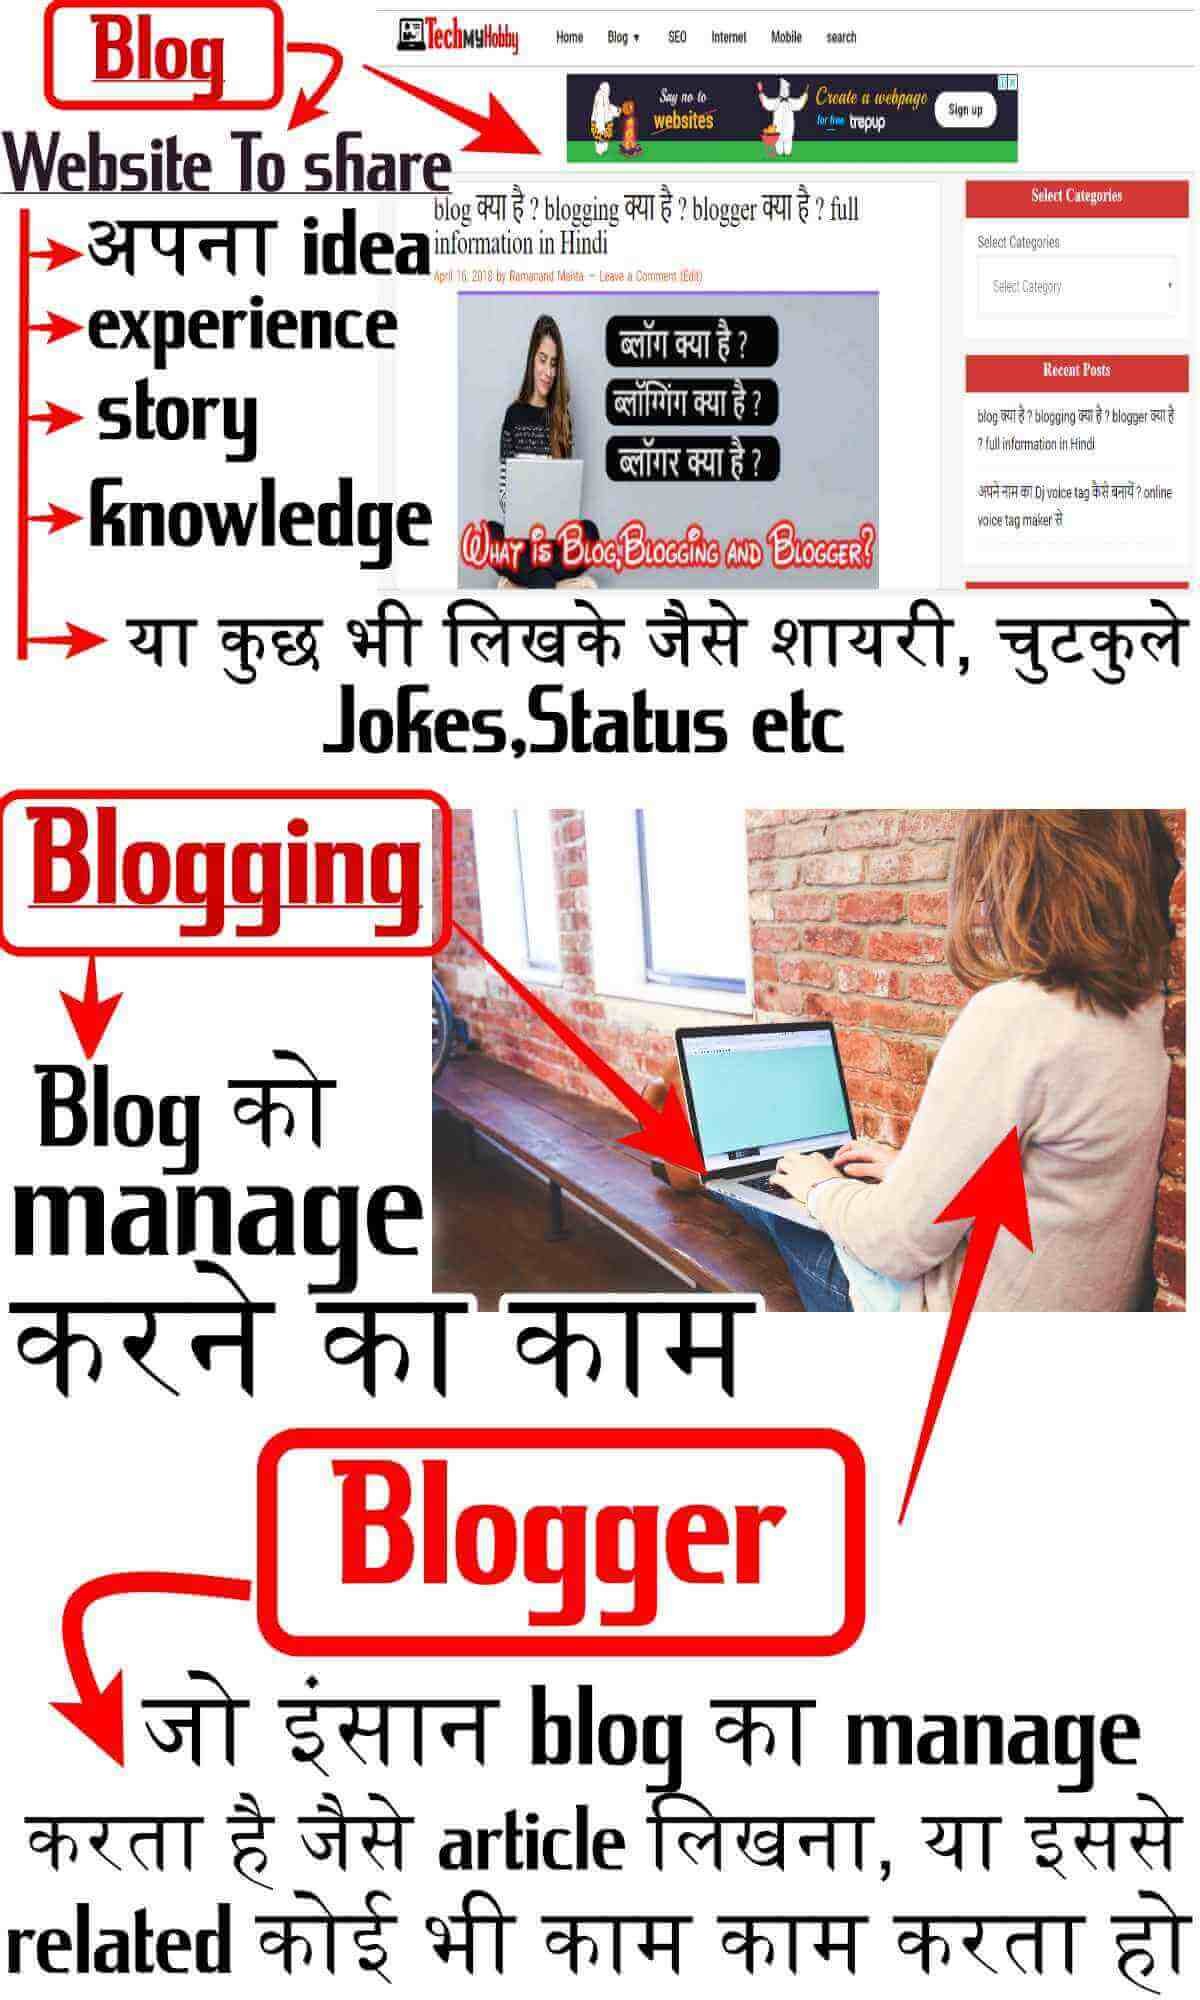 blog-blogging-blogger-kya-hai-infographic